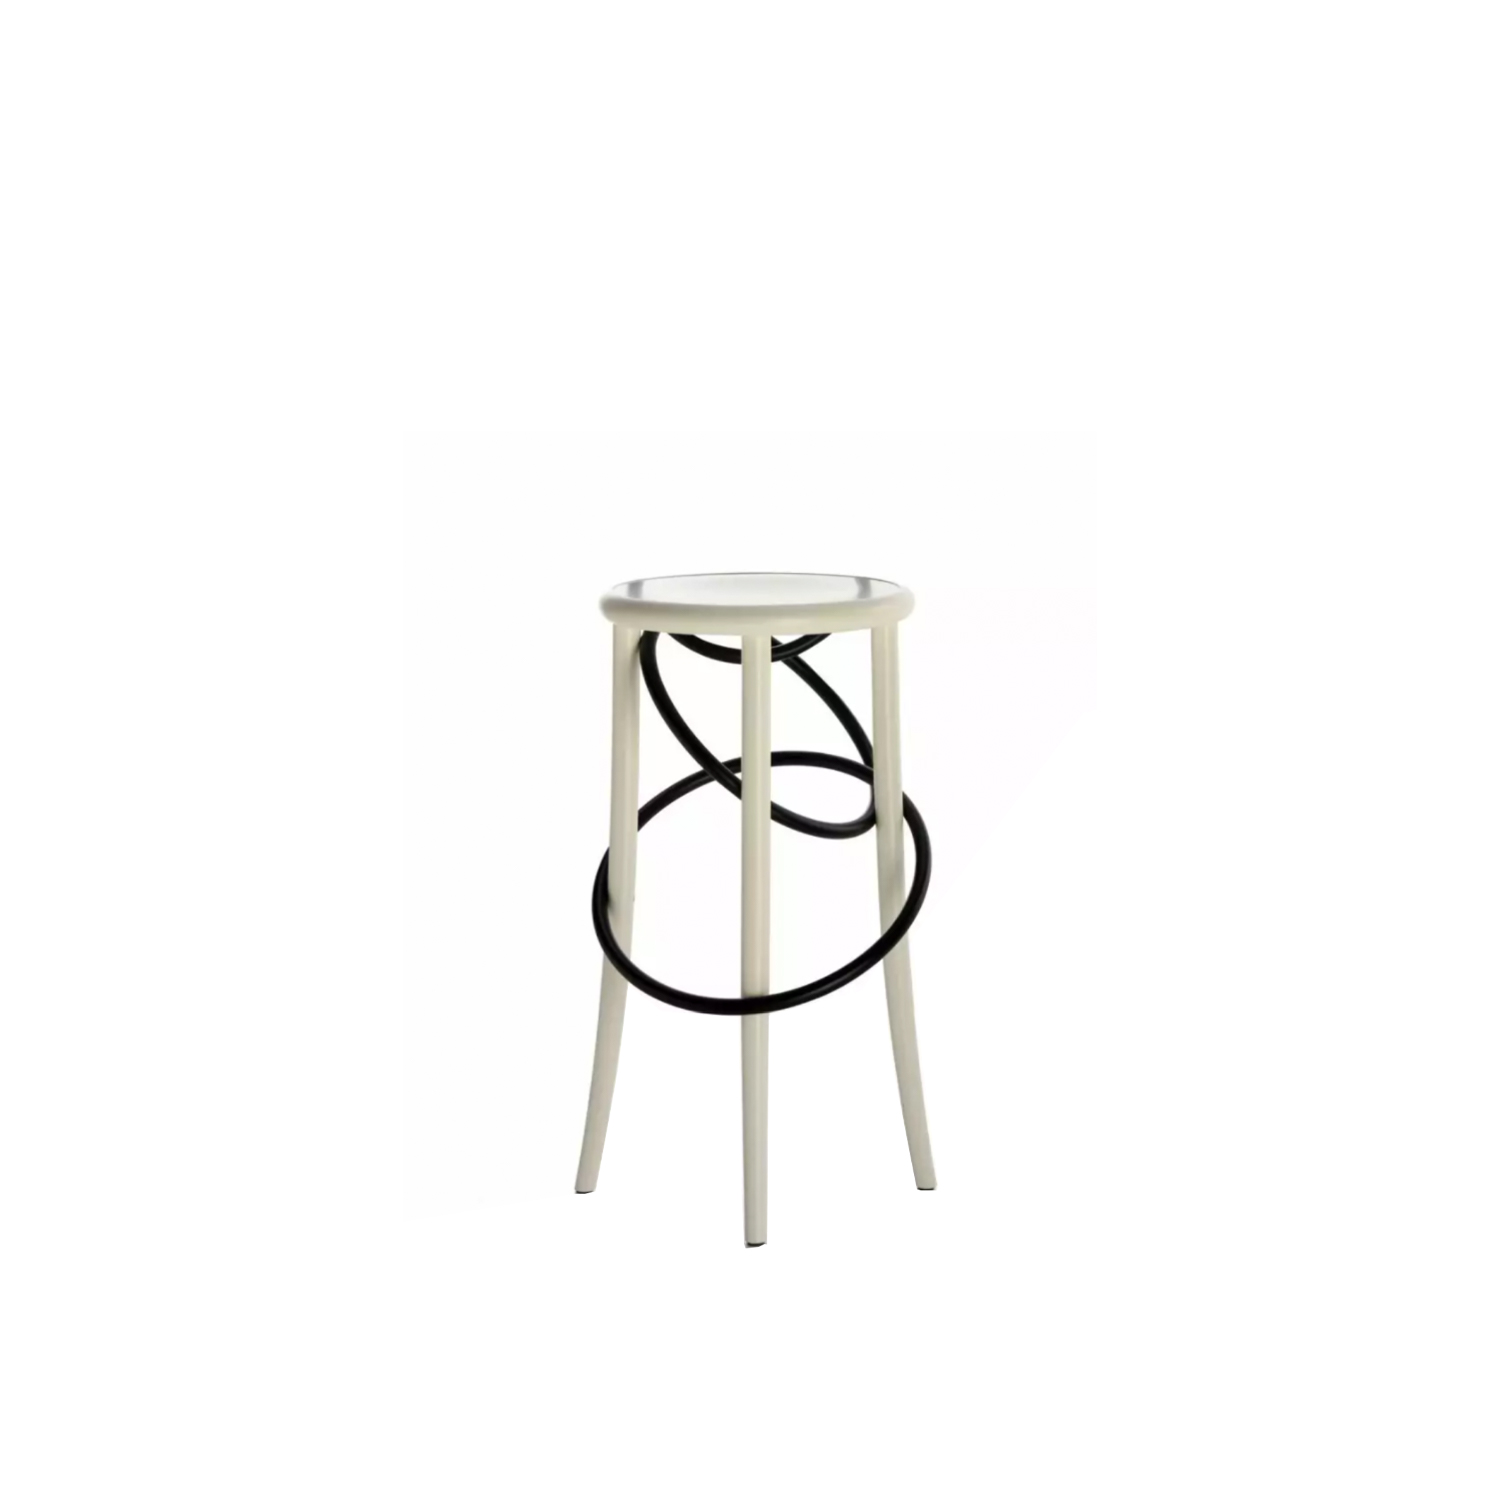 Cirque Upholstered One Tone Stool - The light and playful circus theme is at the core of the Cirque family of stools designed by Martino Gamper for Wiener GTV Design. The bent element, which is the brand's signature trait, is surprisingly and unexpectedly inserted in the base of the stool, forming the outline of the seat in the form of a chain comprising two or three wooden rings that loop around the full length of the stool legs. This striking styling effect blends in seamlessly with the functionality of the seat, which is available in two heights: a tall, sleek stool with or without backrest, Cirque L and Cirque M, and the stable and well-proportioned low stool, Cirque S.  Also available in an original version with rings in a brass finish. | Matter of Stuff